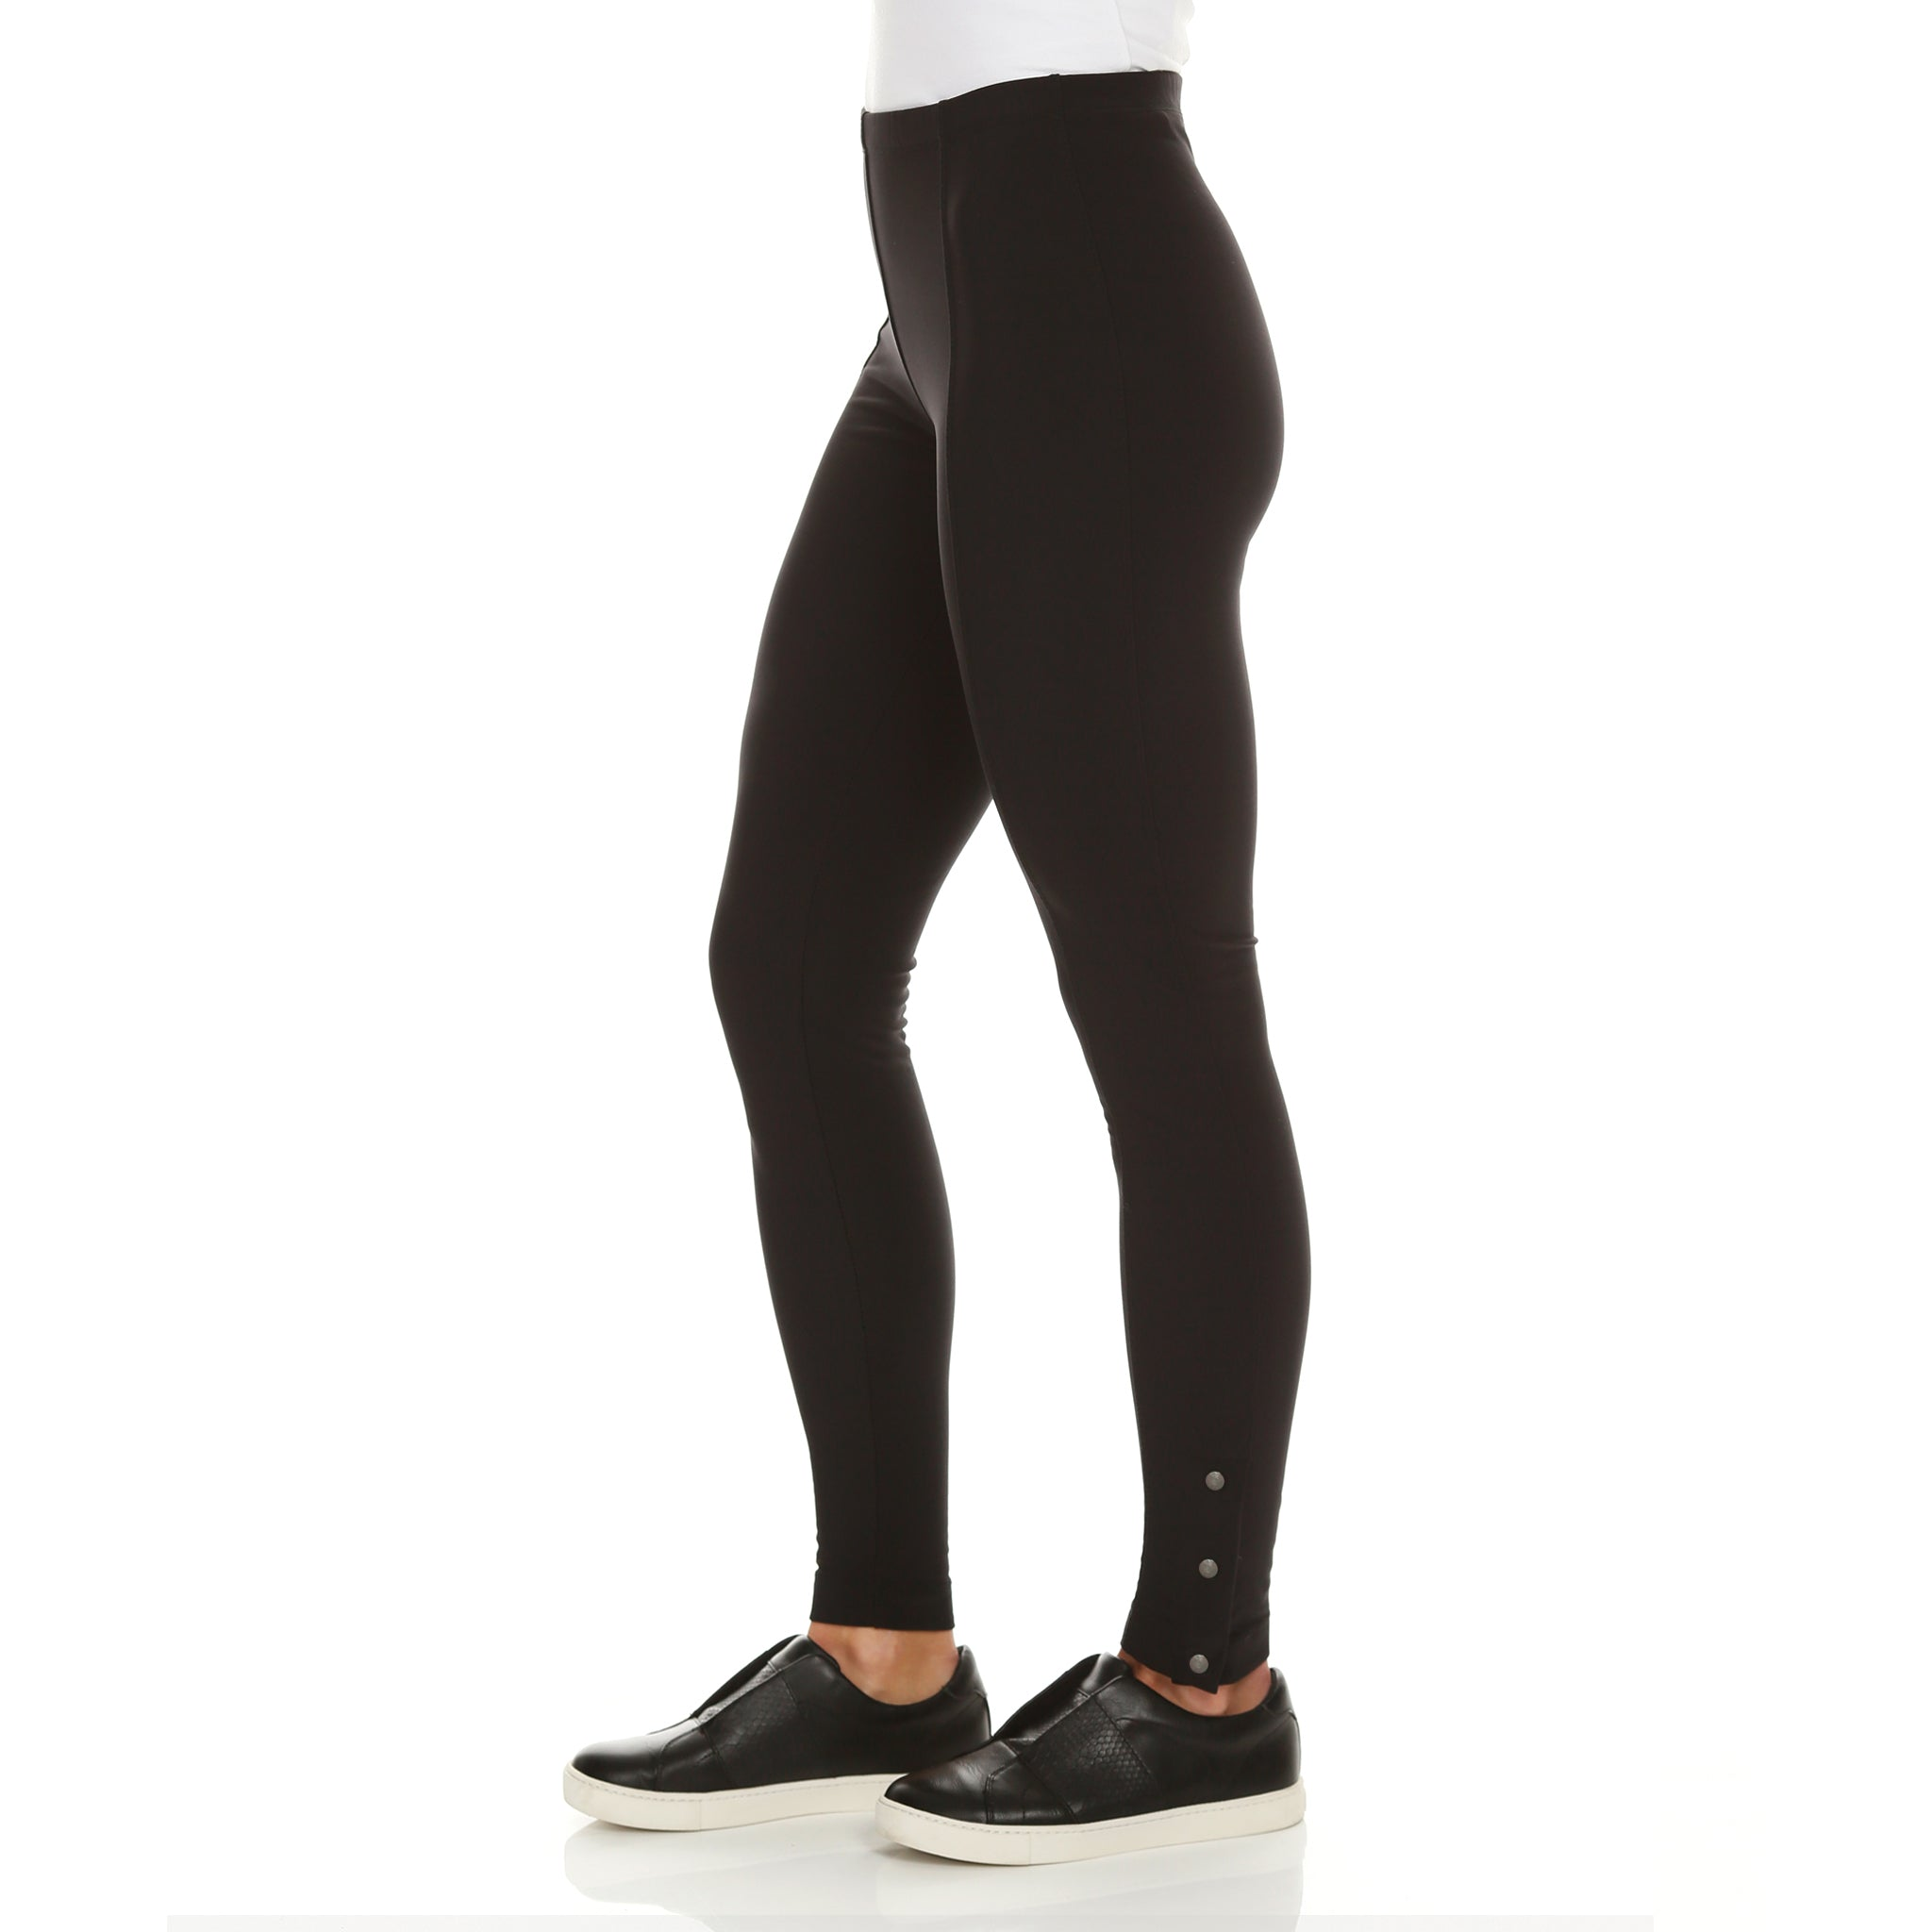 Aida Fleece-Lined Leggings with 3-Button Snaps at Ankle